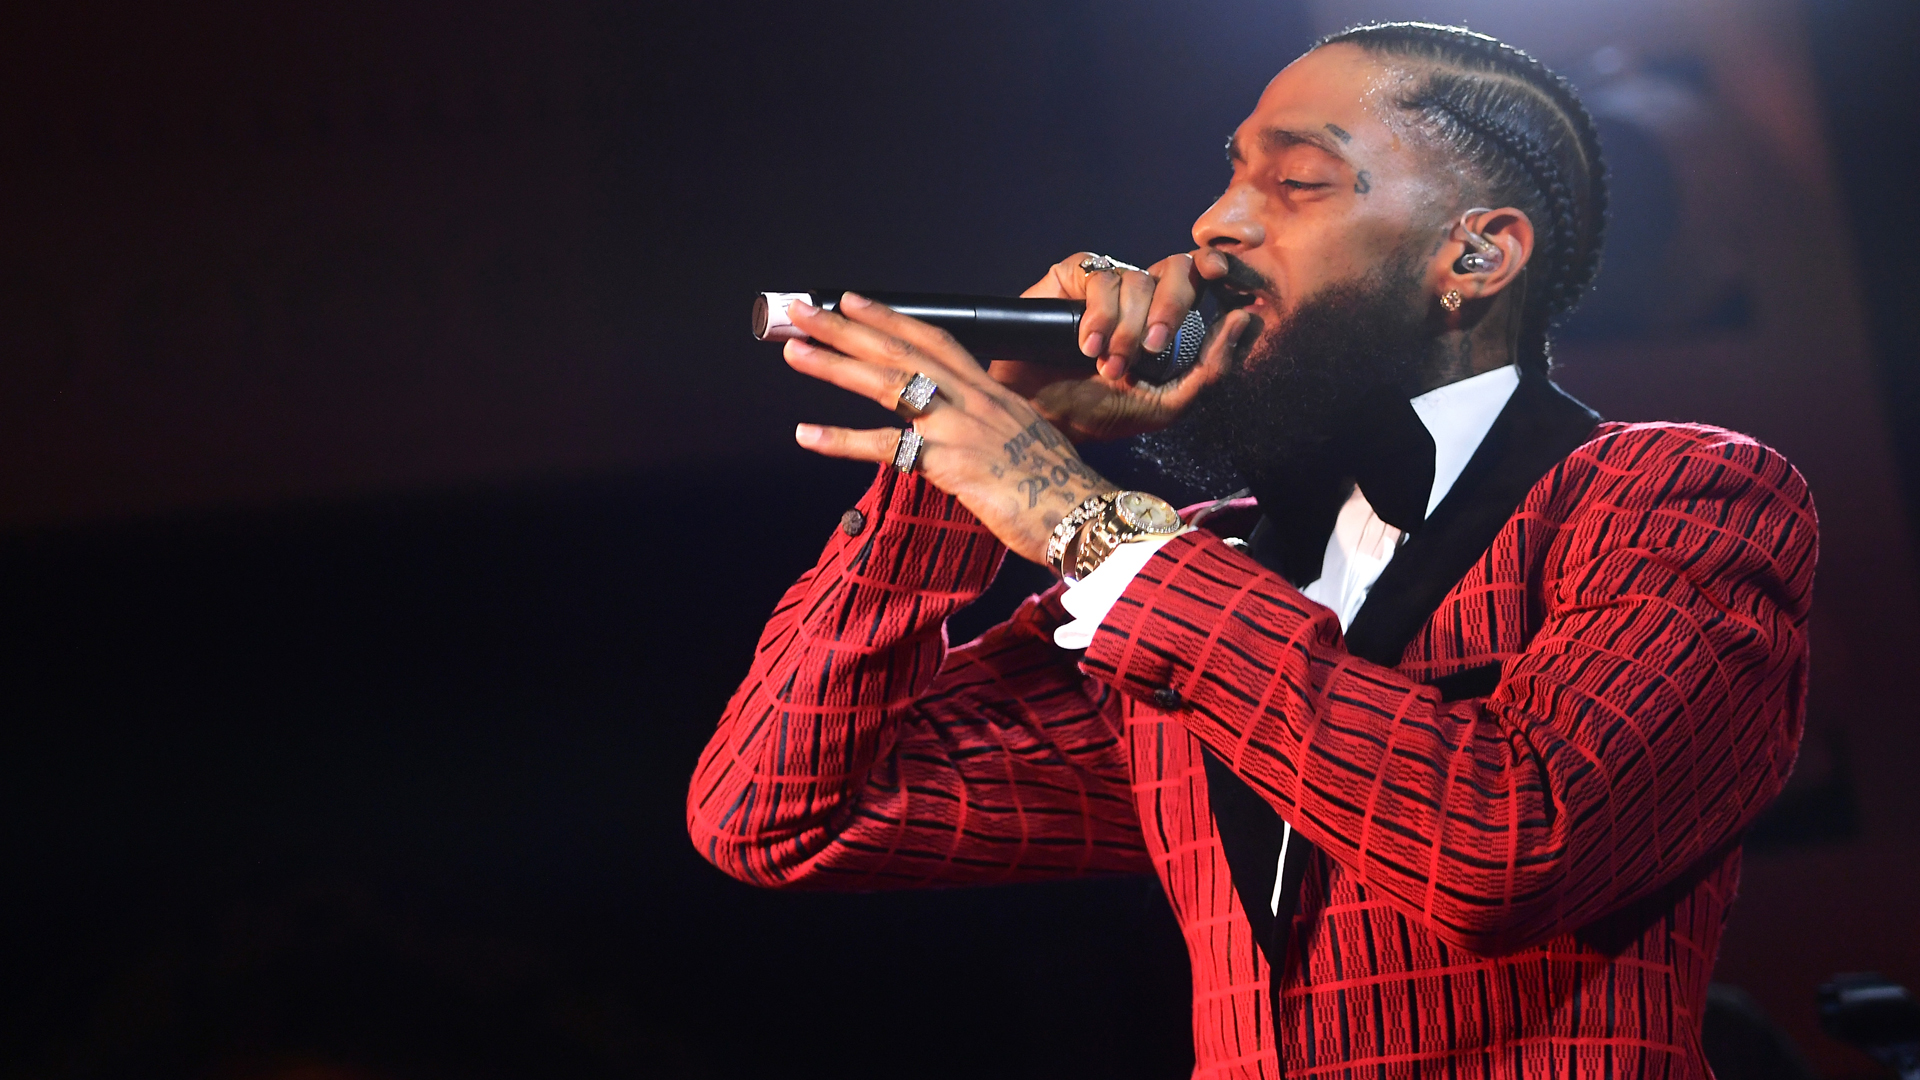 nipsey hussle earns 3 posthumous grammy nominations including for best rap song and performance ktla https ktla com news local news nipsey hussle earns 3 posthumous grammy nominations including for best rap song and performance